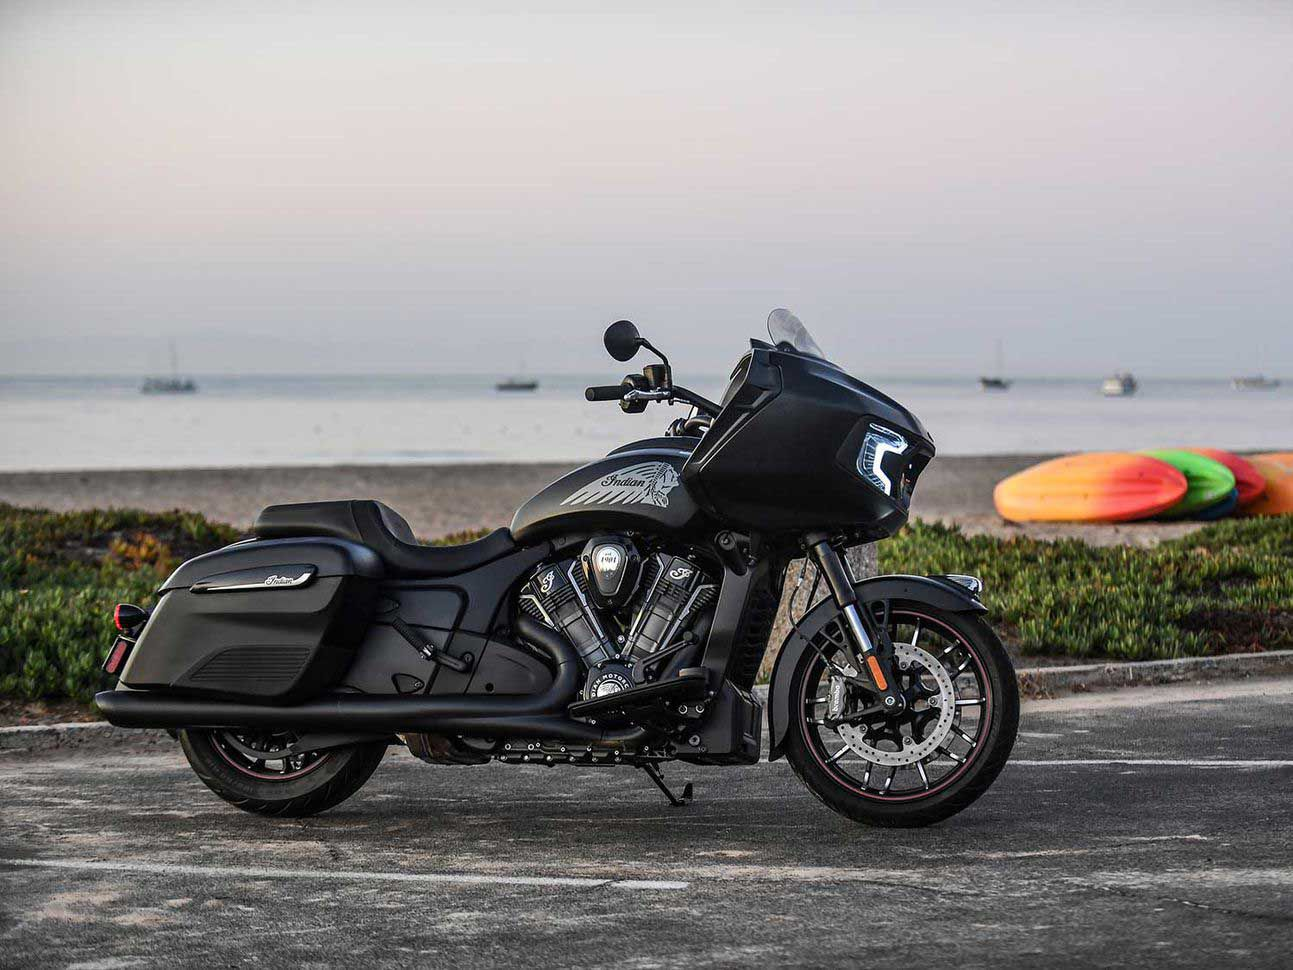 Got to have a cruiser around for mellow days and longer rides, and my ideal would be the Indian Motorcycle Challenger Dark Horse.